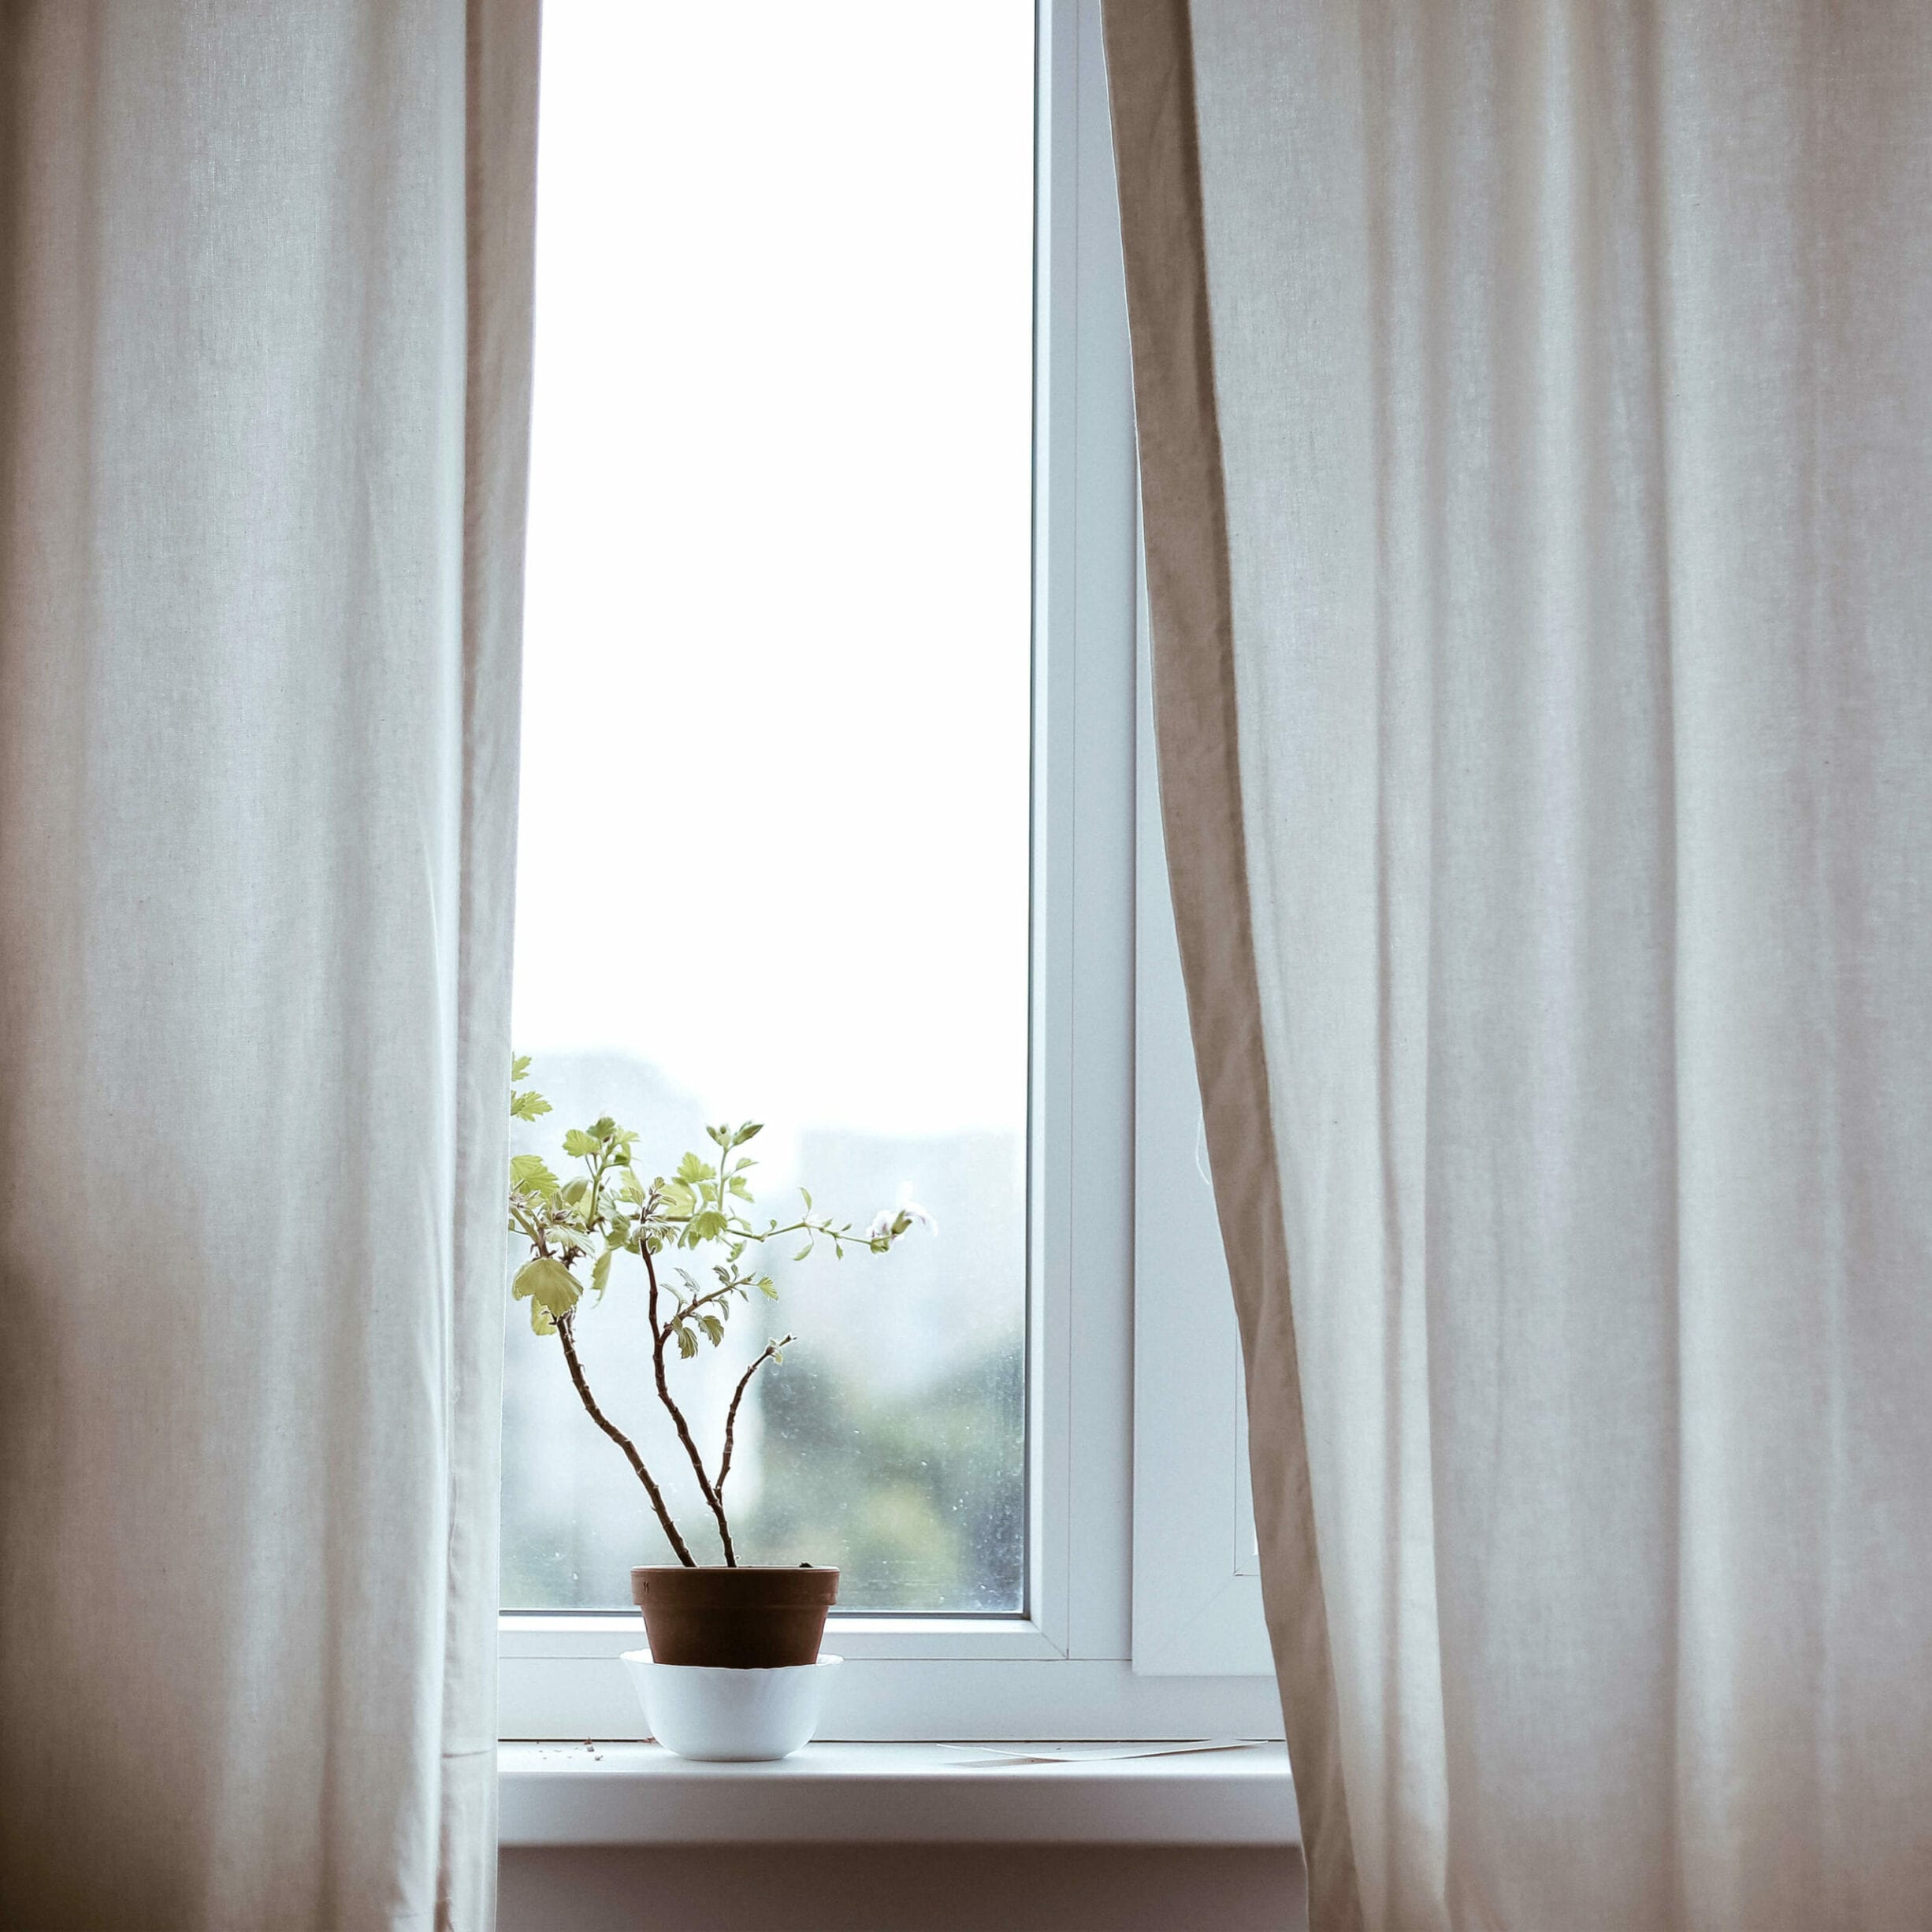 plant on windowsill, curtains